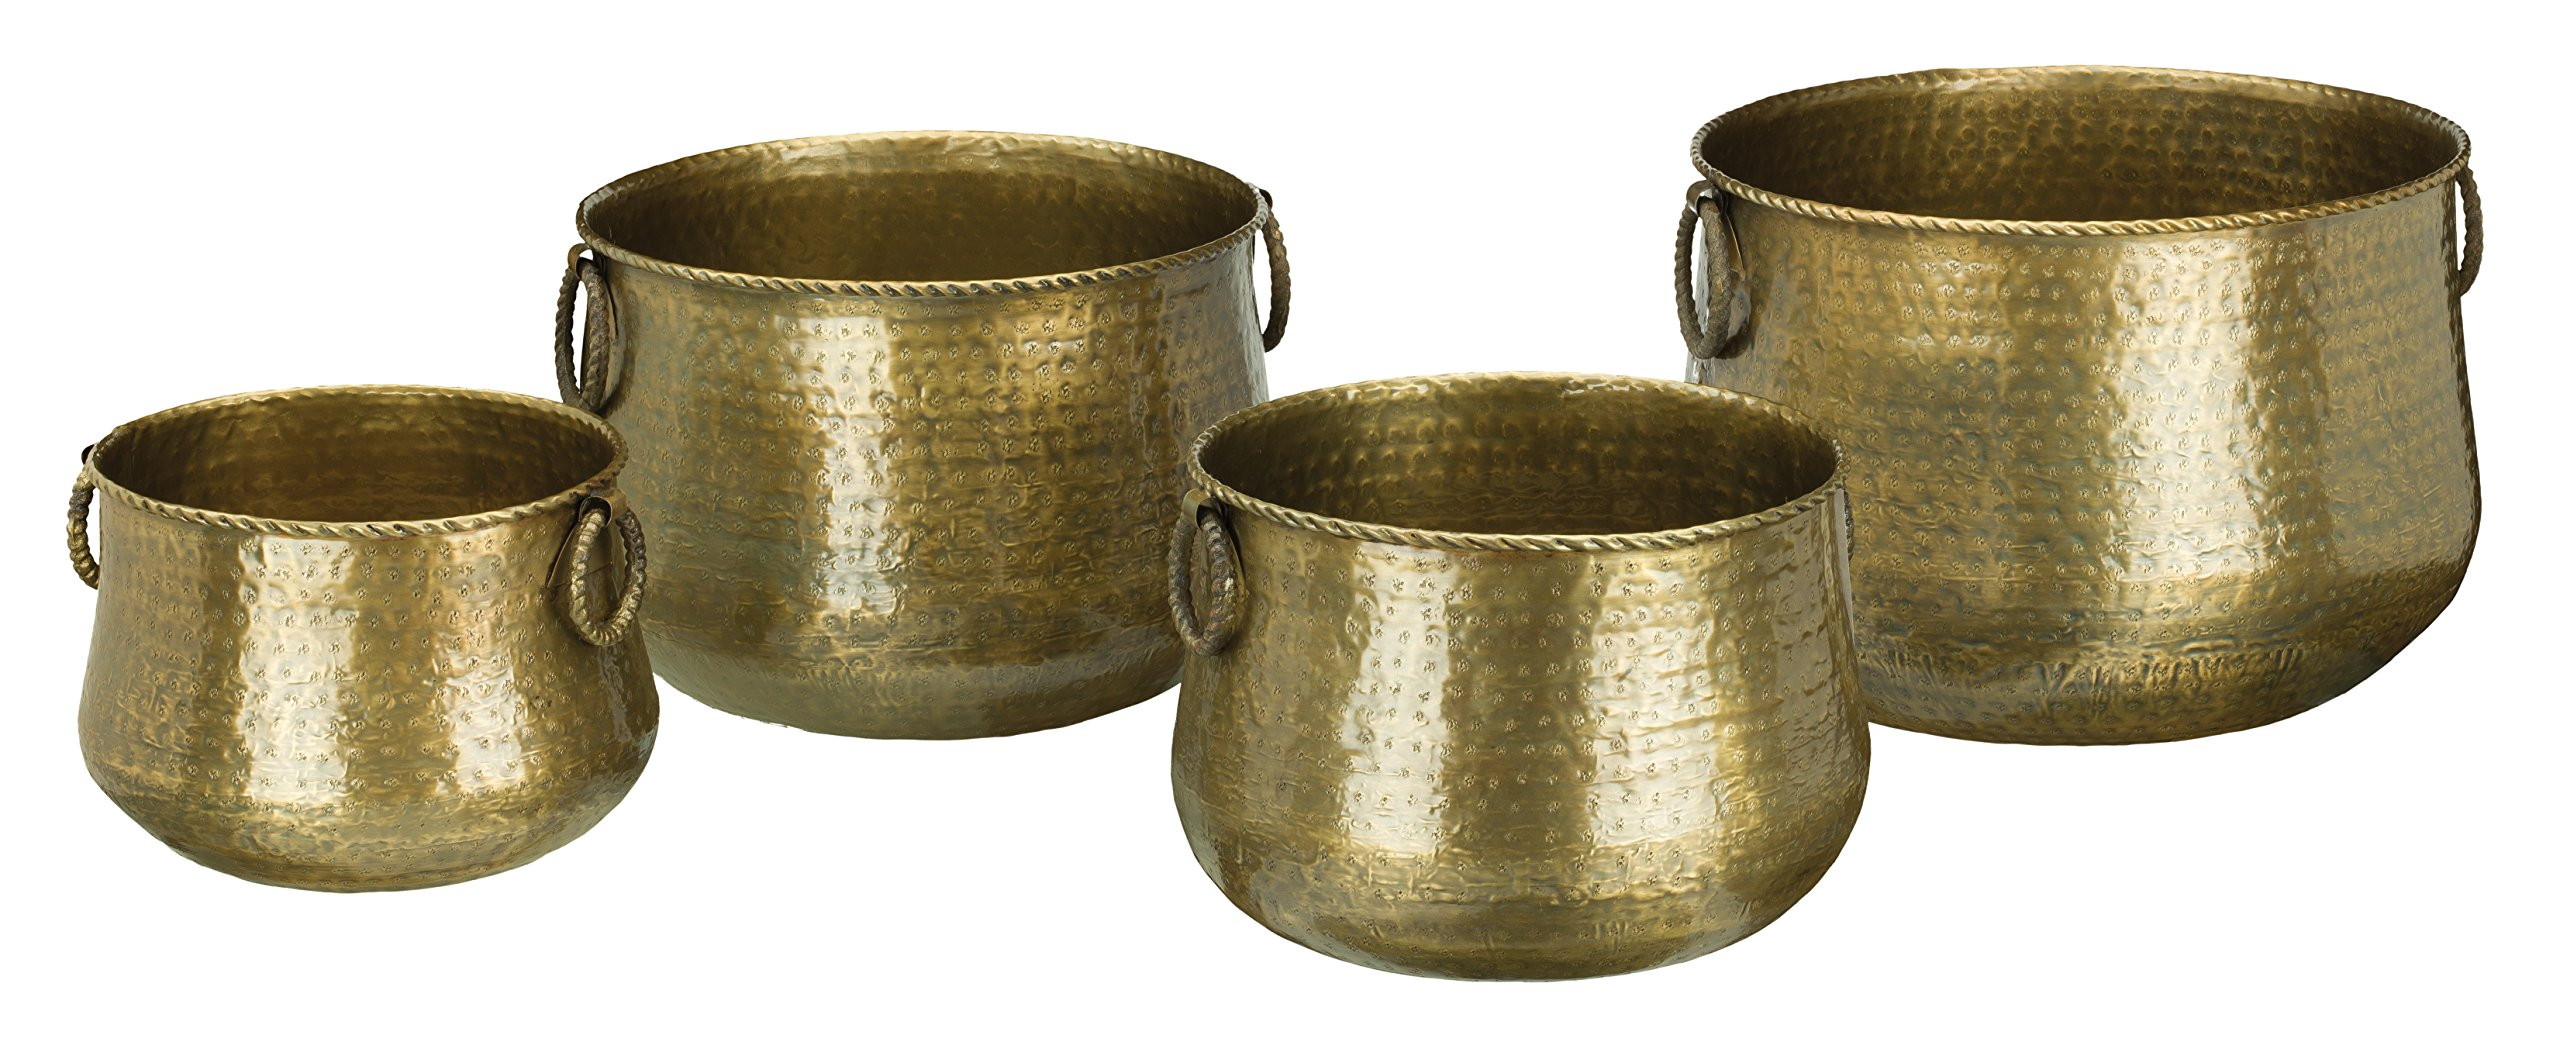 Regal Art & Gift Planter (Set of 4), Hammered Brass by Regal Art & Gift